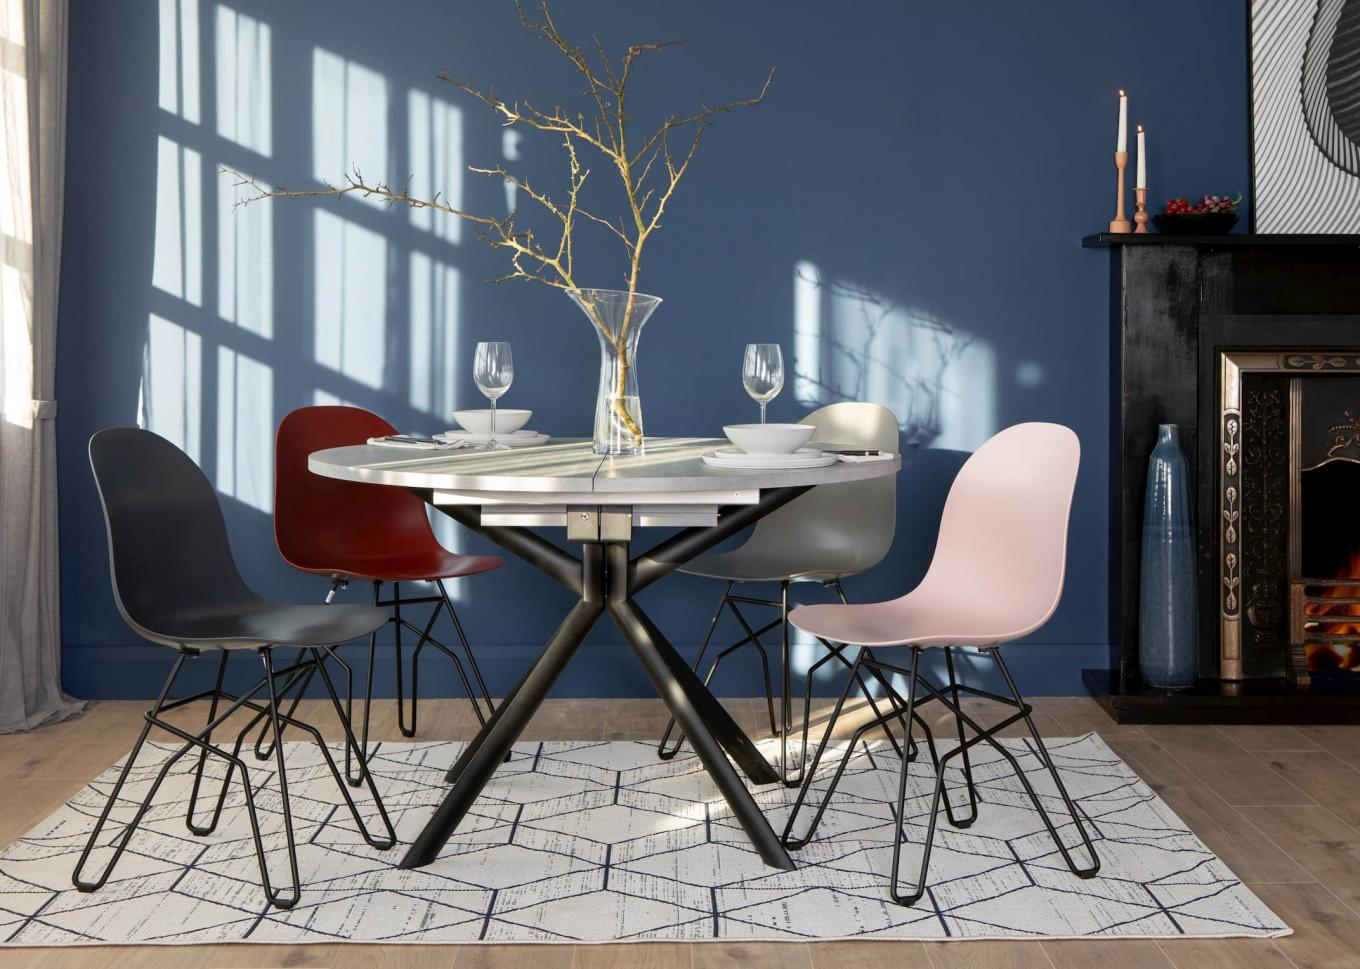 New Academy Chairs & Giove Table Lookbook